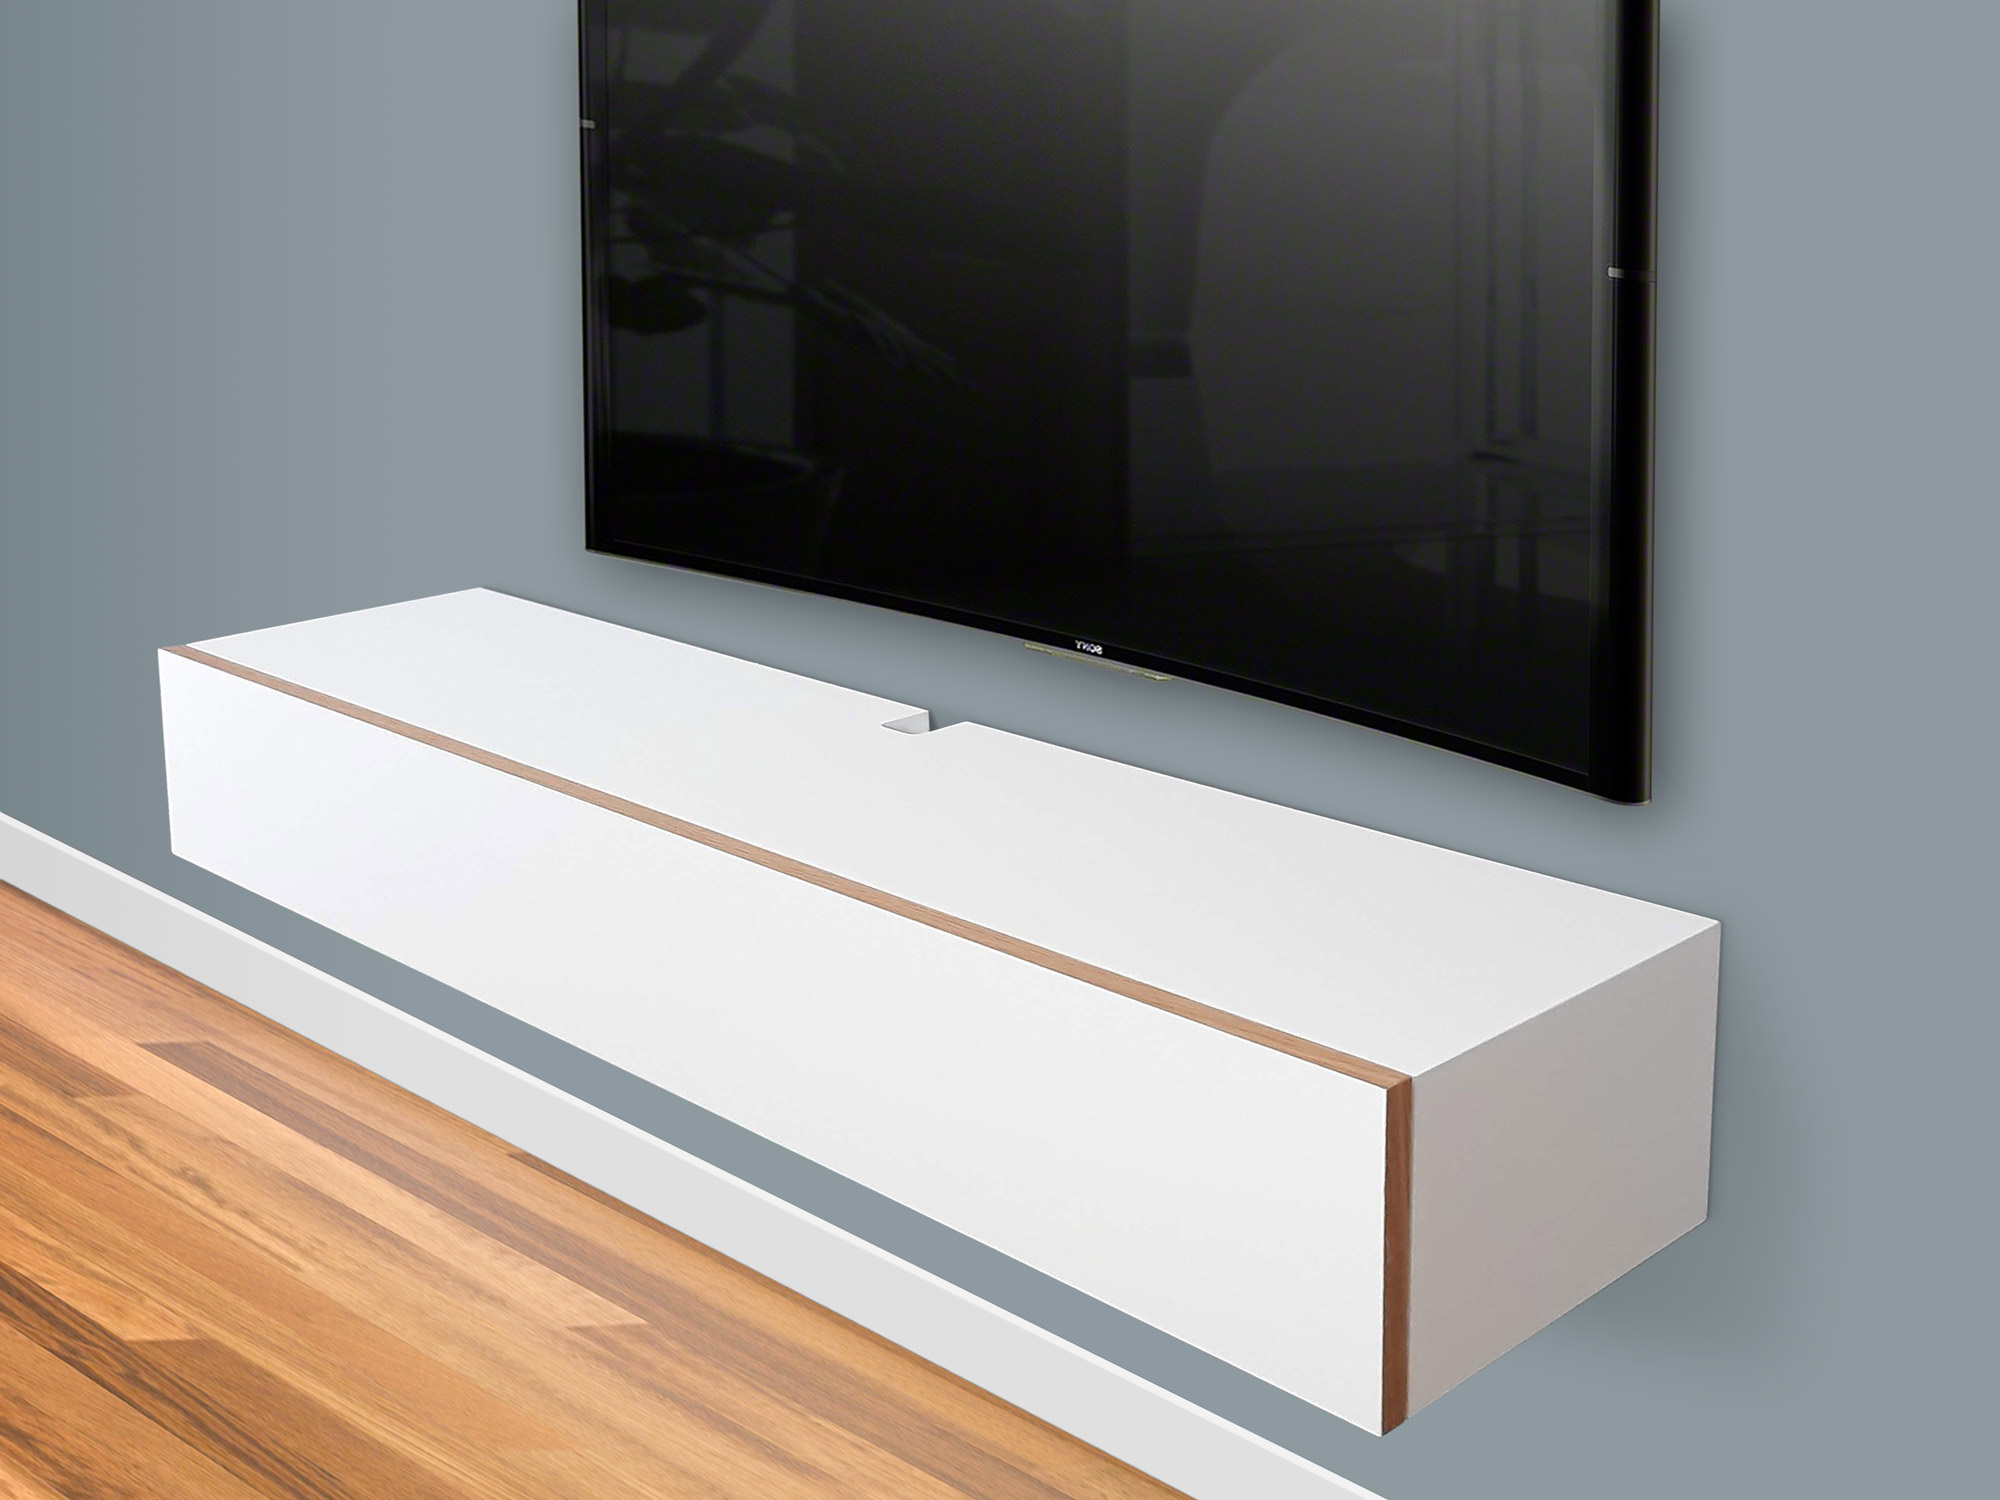 Blanca White Floating TV Stand, Wall Mount Media Console, Floating Entertainment Shelf